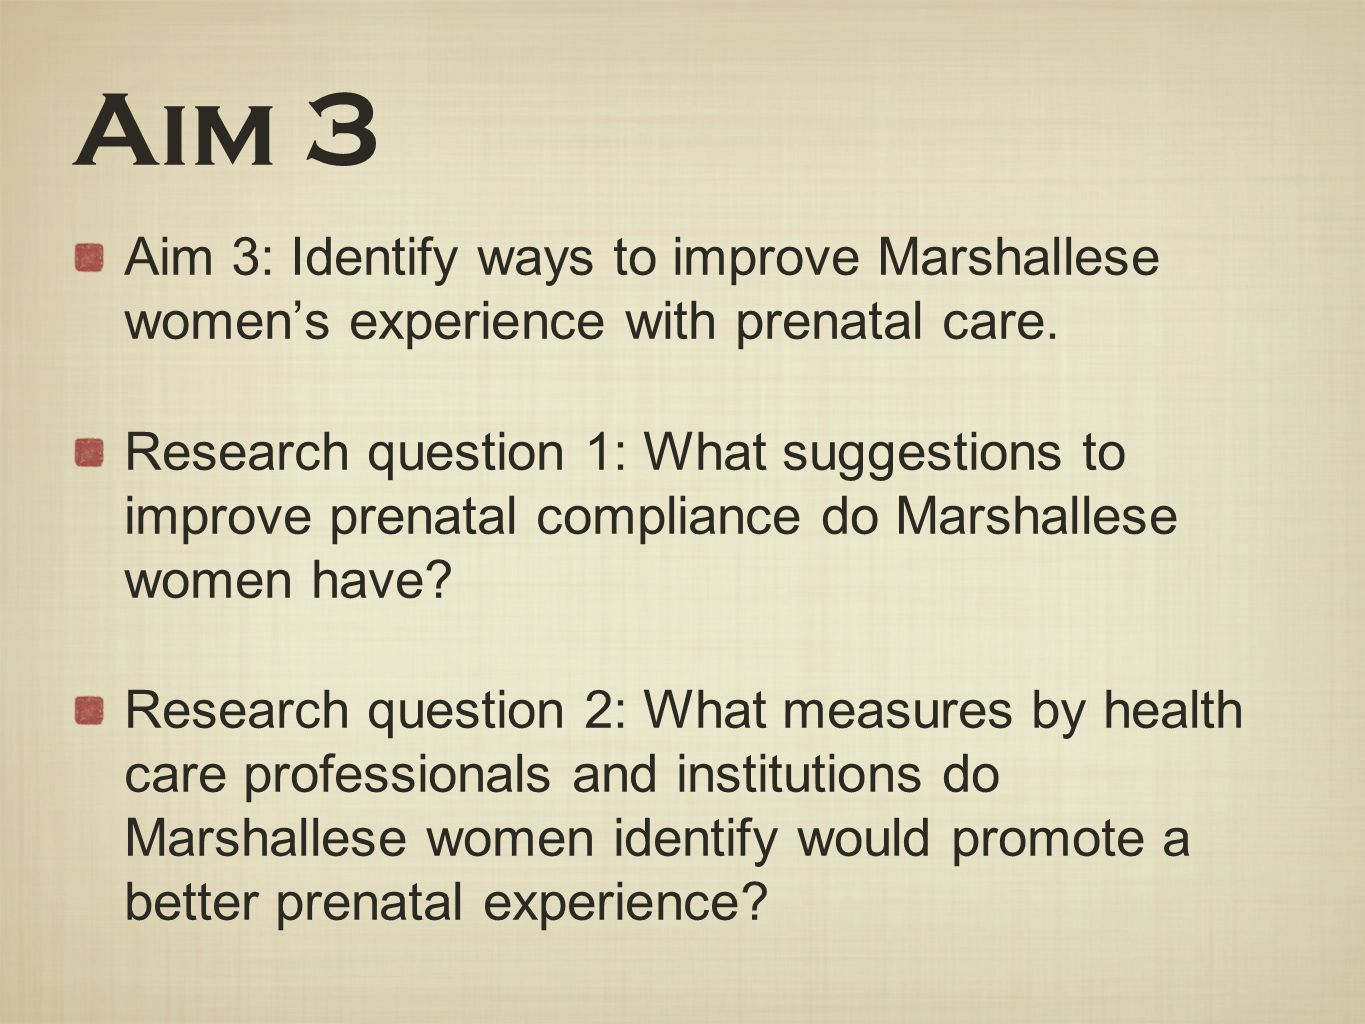 Aim 3 Aim 3: Identify ways to improve Marshallese women's experience with prenatal care.